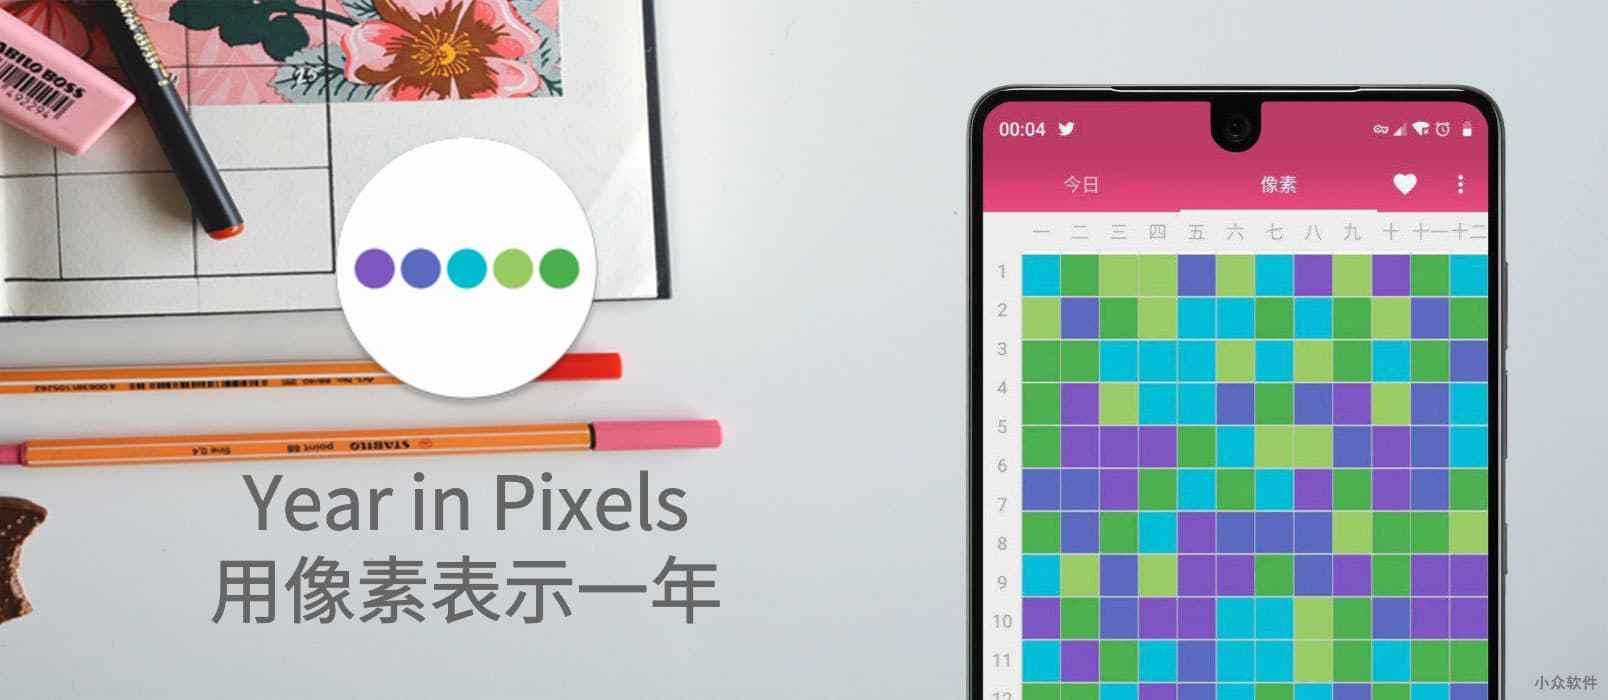 Year in Pixels - 用像素表示一年的喜怒哀乐 [Android/iOS] 1